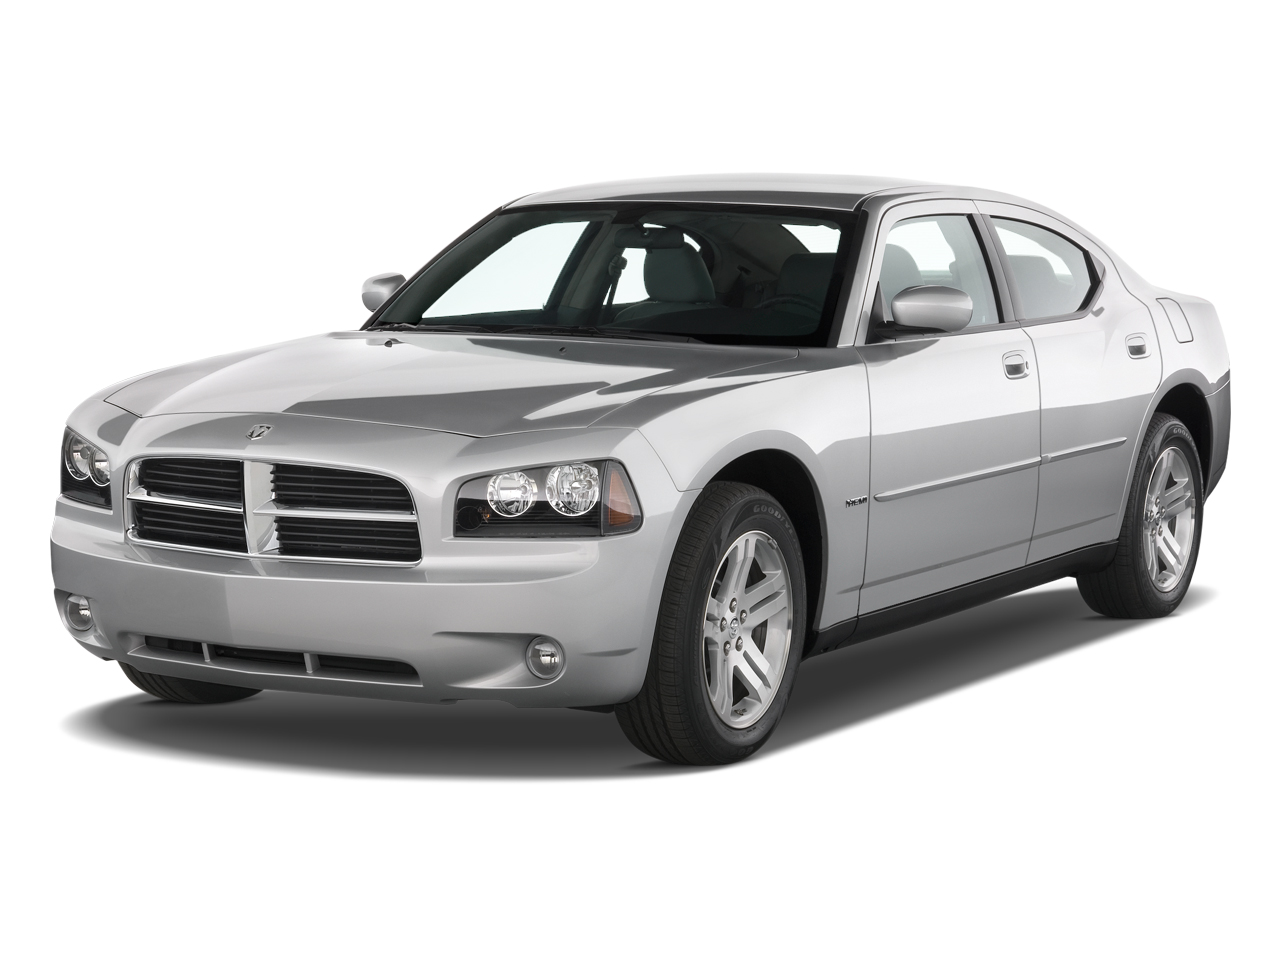 2010 dodge charger review ratings specs prices and photos the car connection. Black Bedroom Furniture Sets. Home Design Ideas